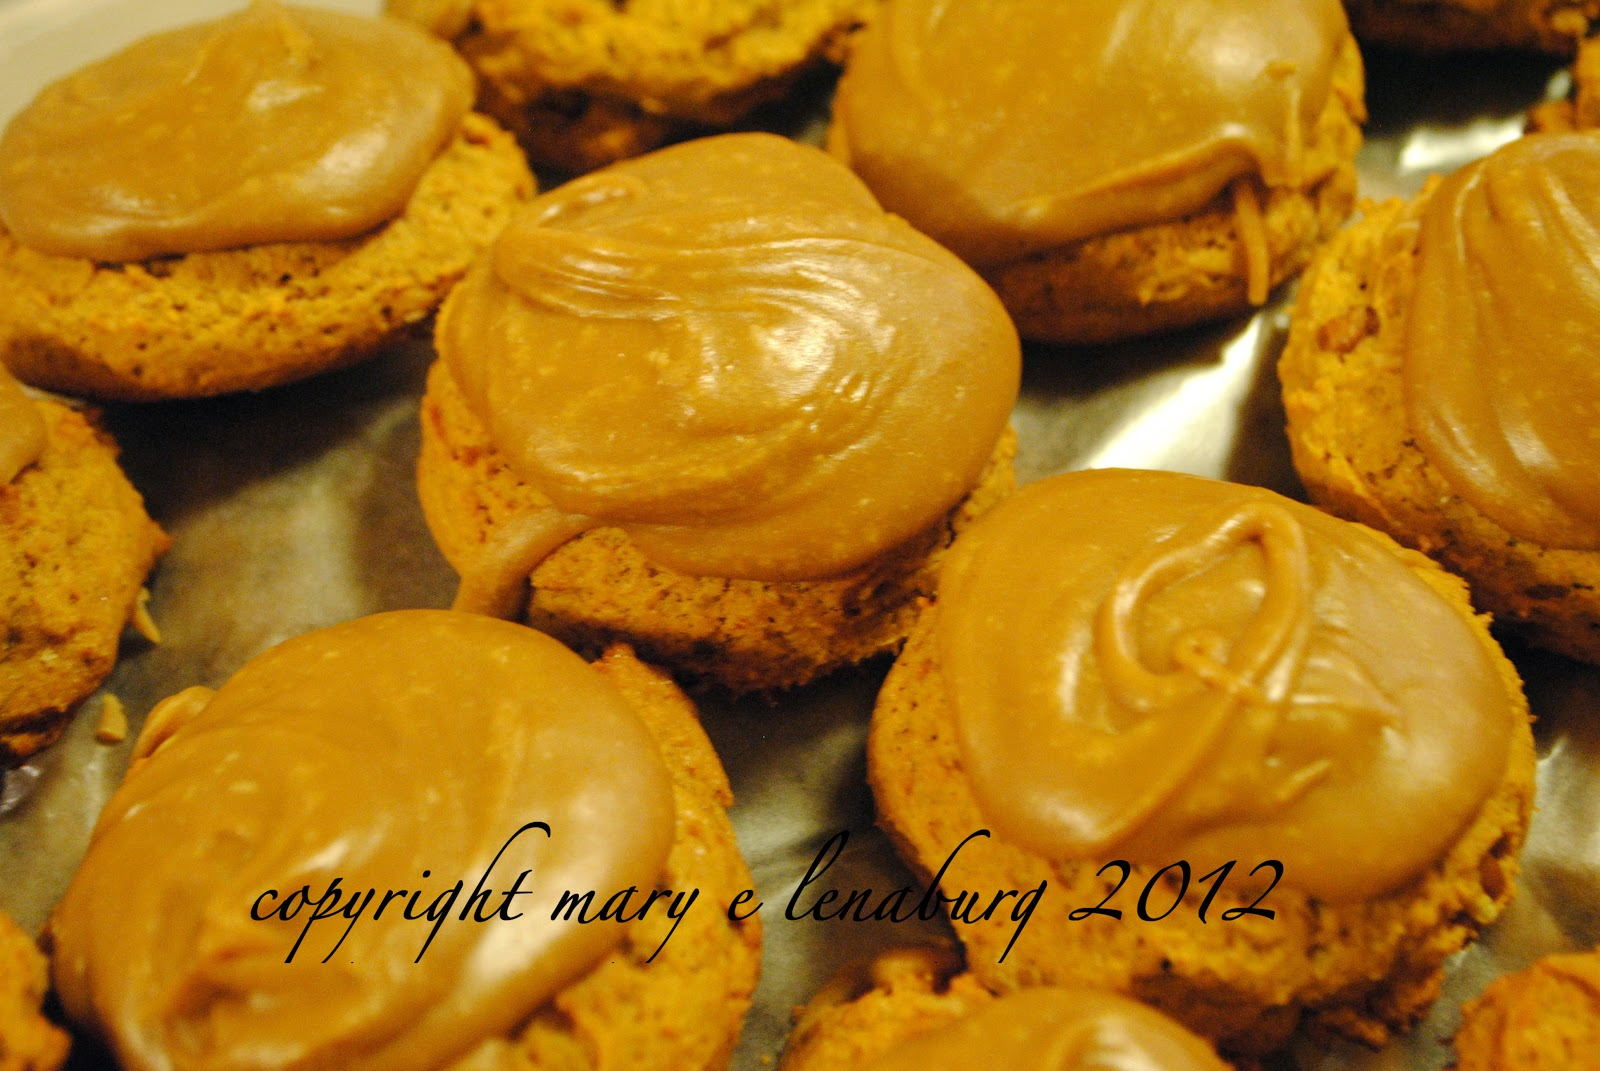 Passionate Perseverance: day three - caramel frosted ...